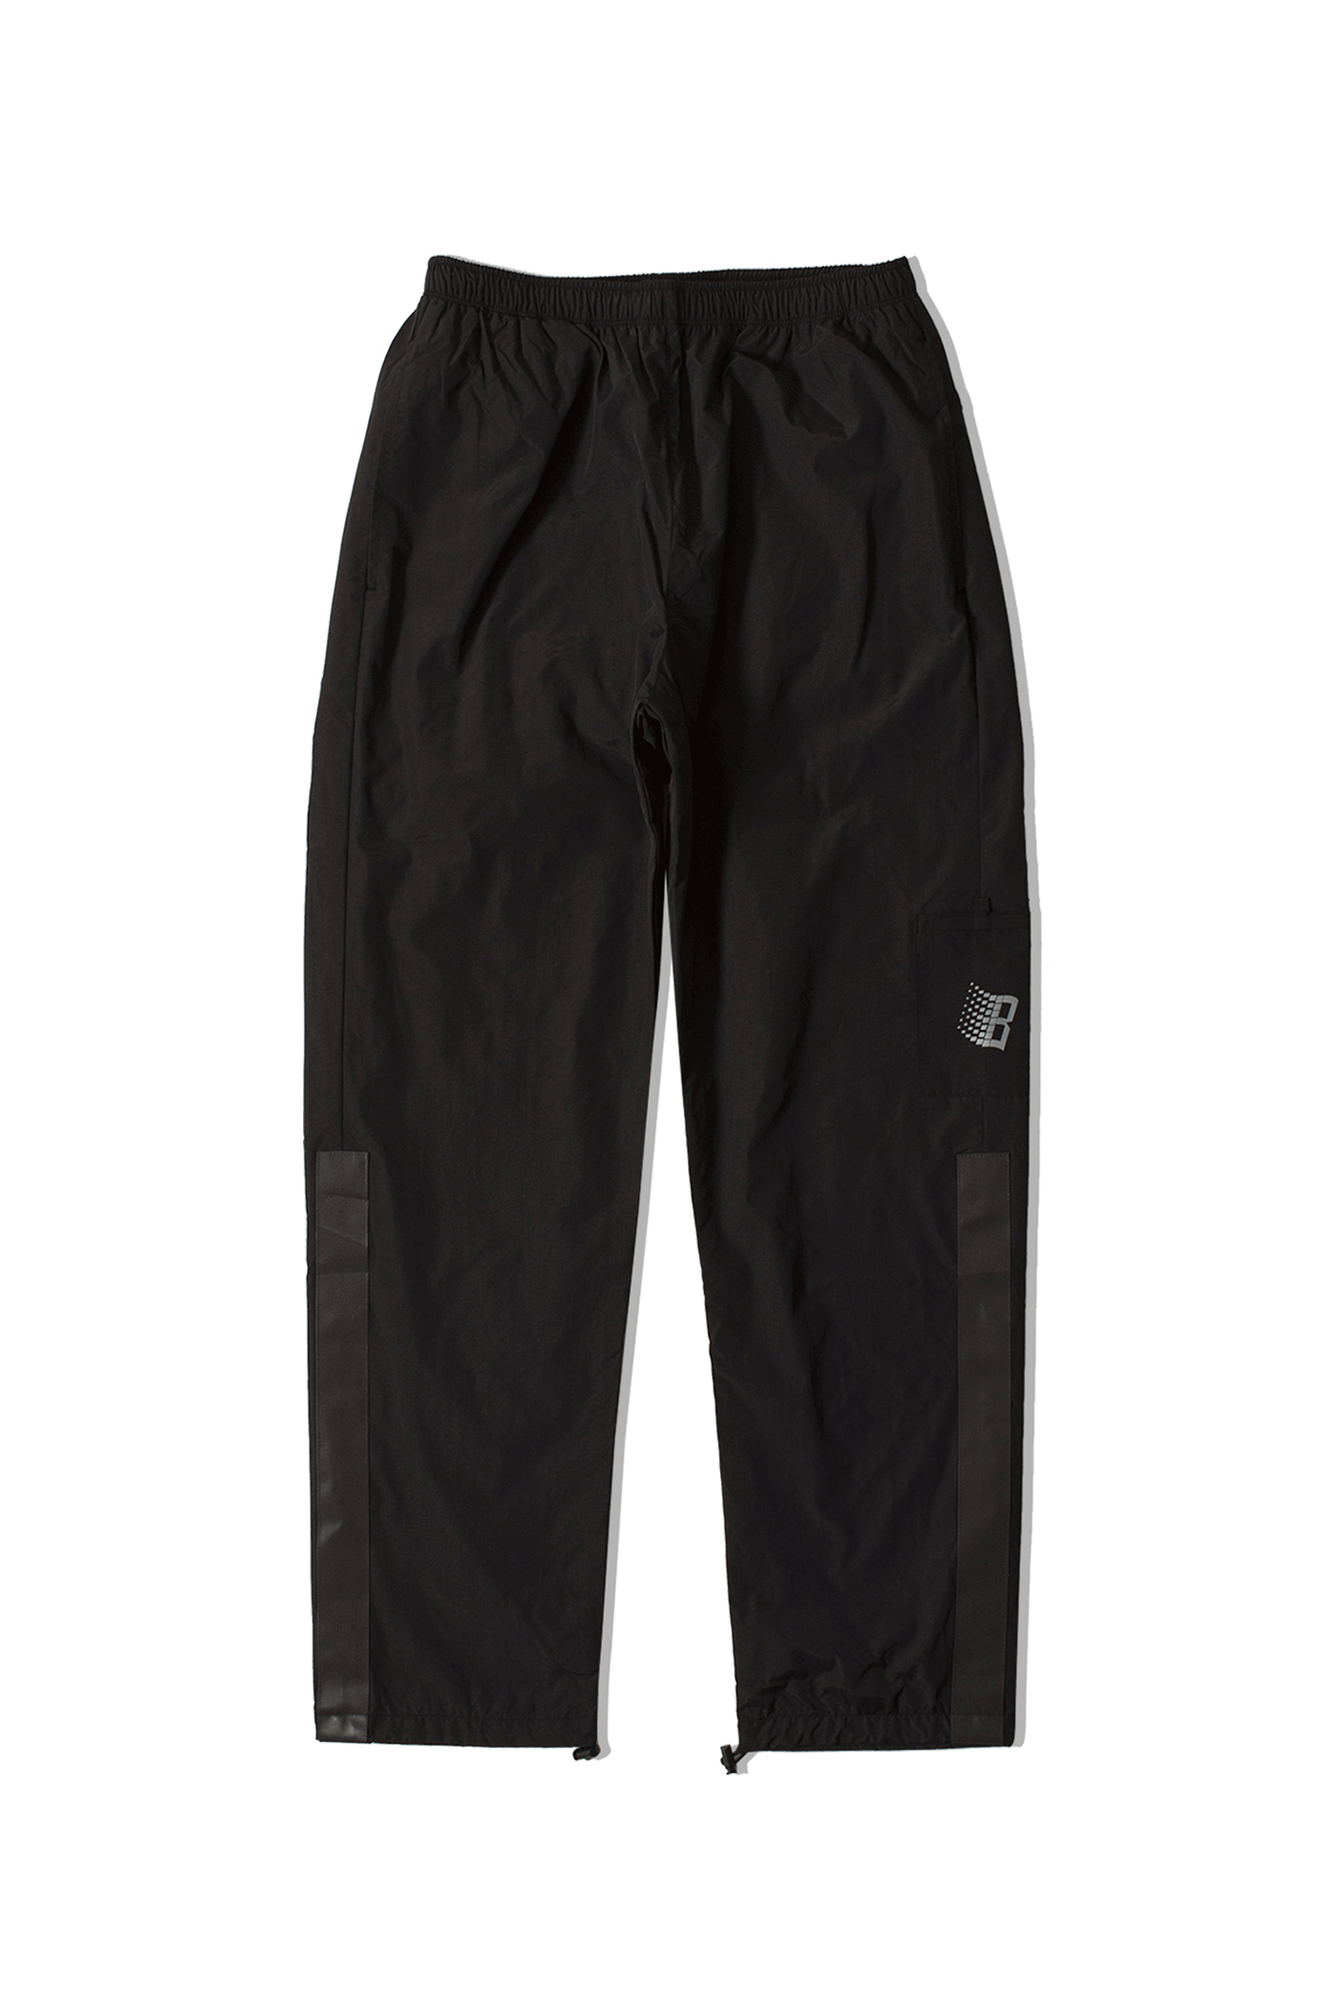 Bronze 56K Pantaloni sportivi Track Pants Nero TRACKPANT#000#NERO#30 - One Block Down